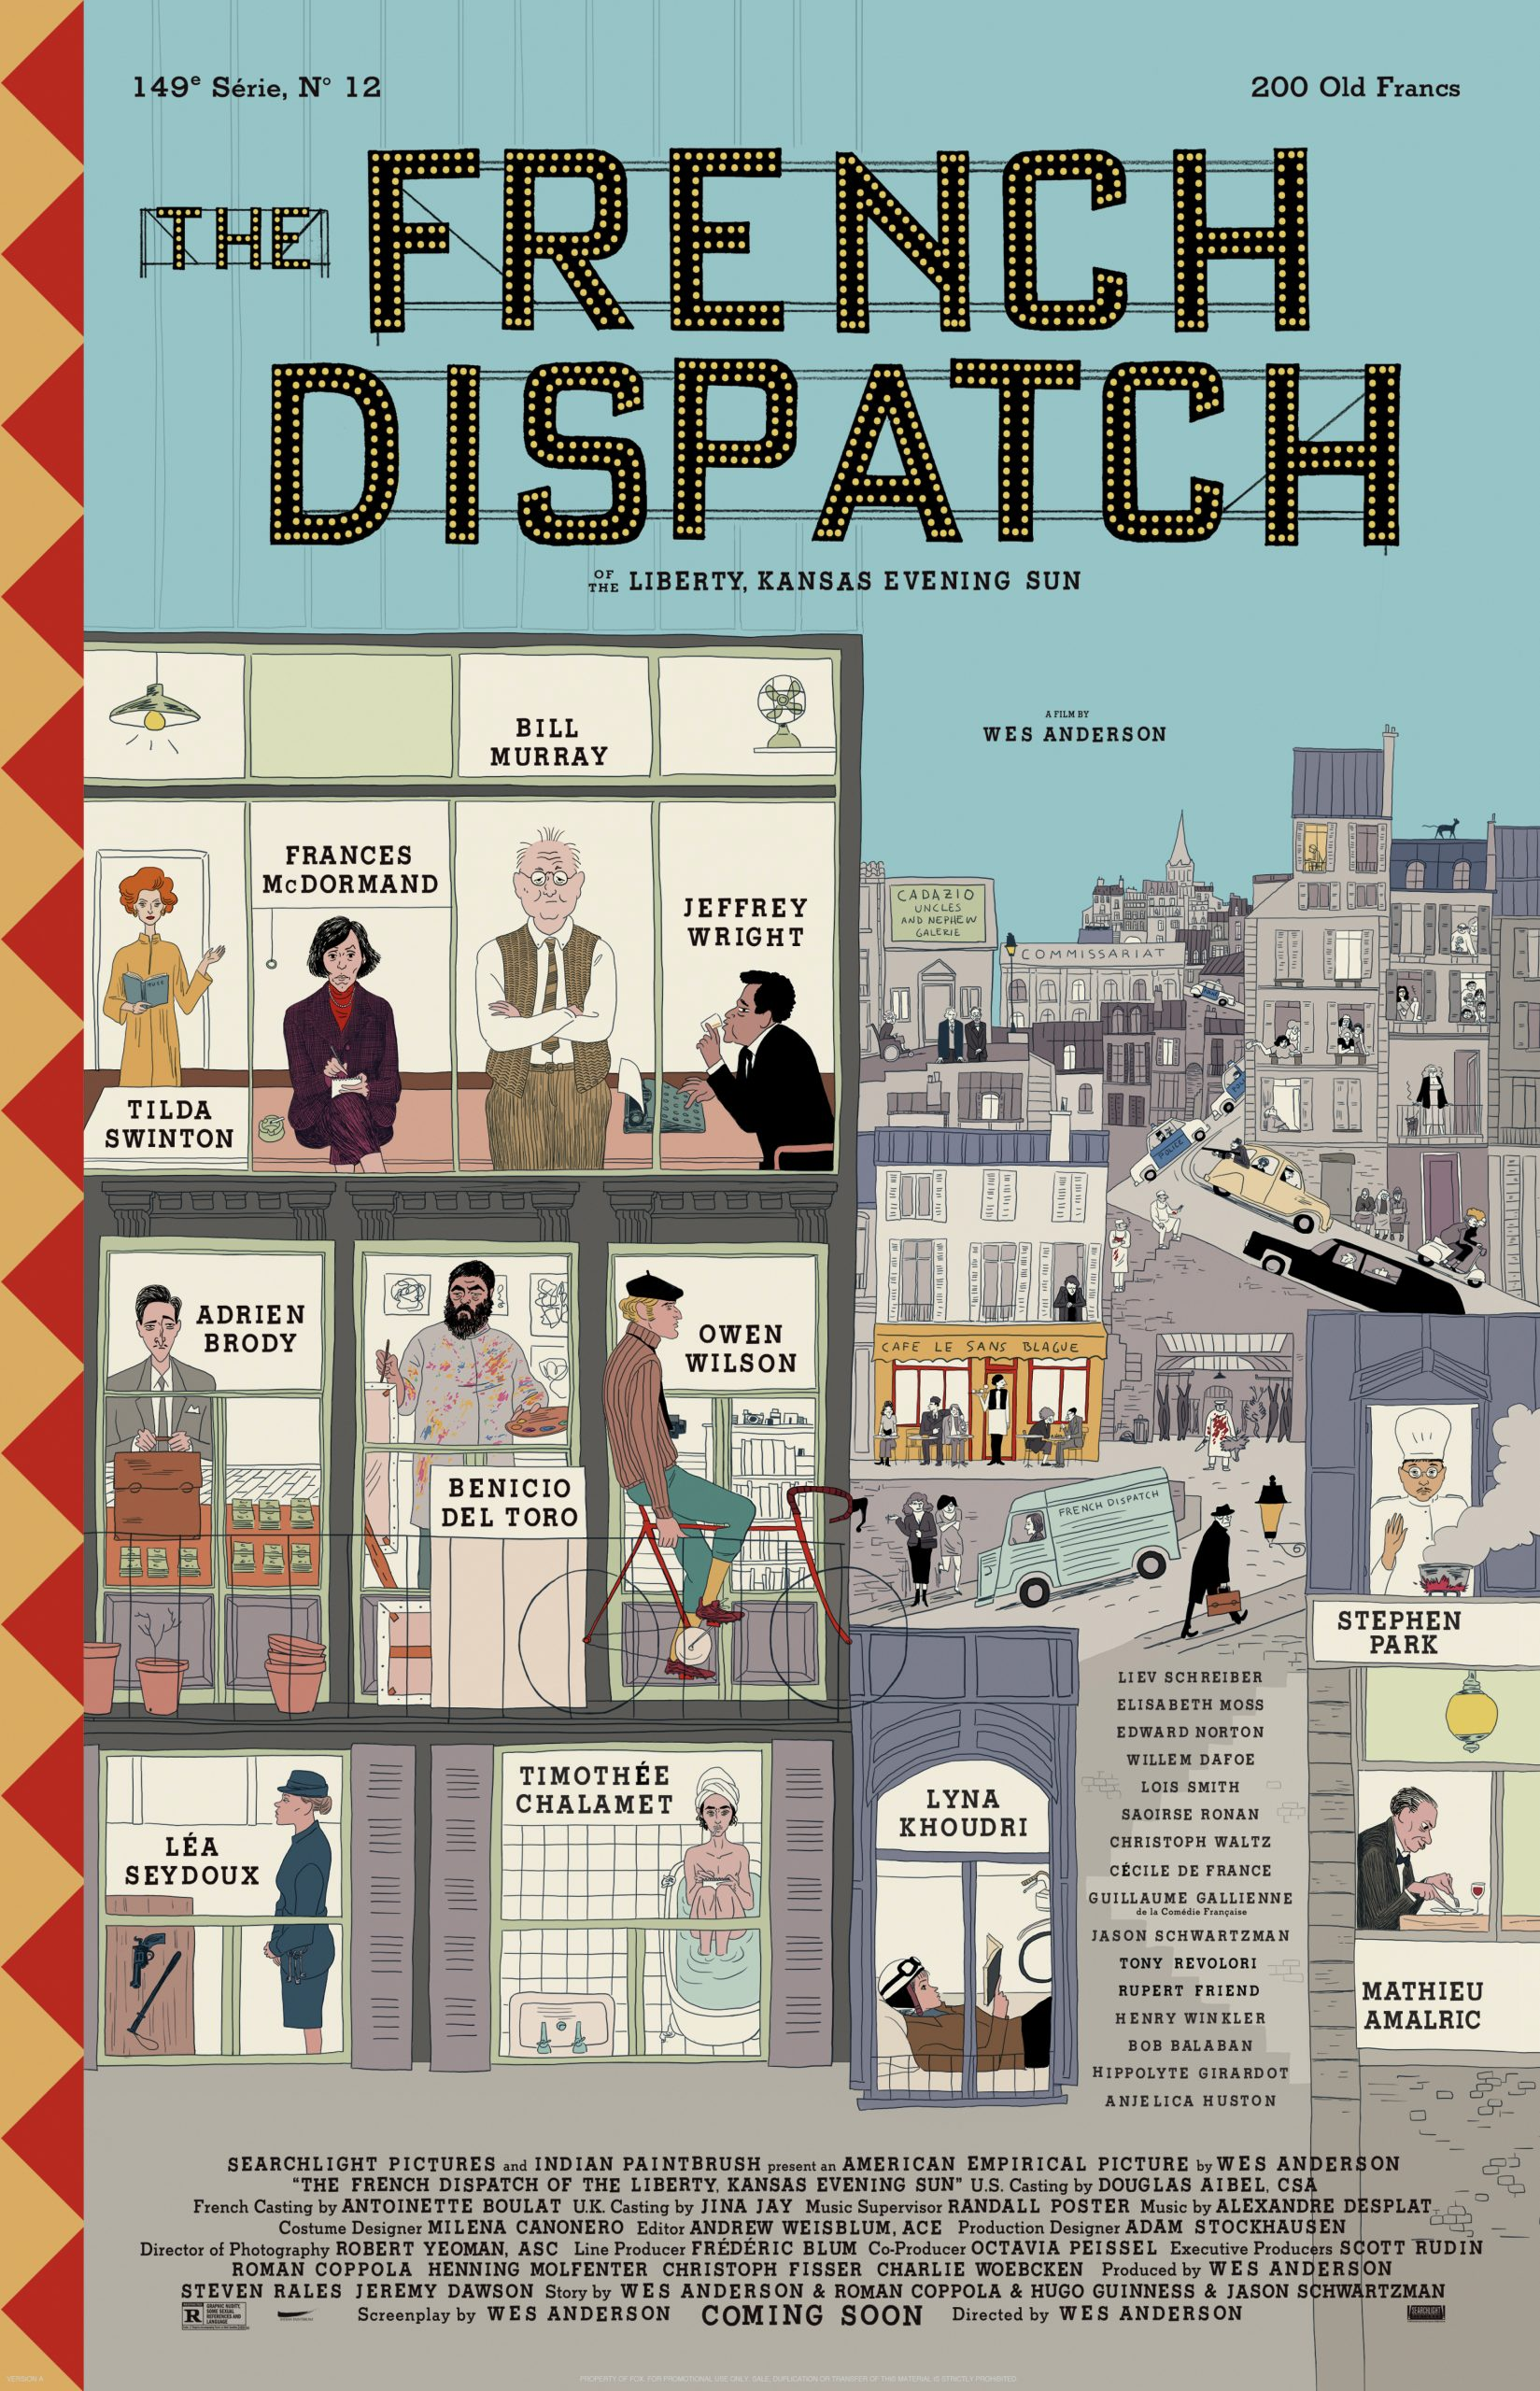 French Dispatch Trailer: Wes Anderson Brings All the Stars